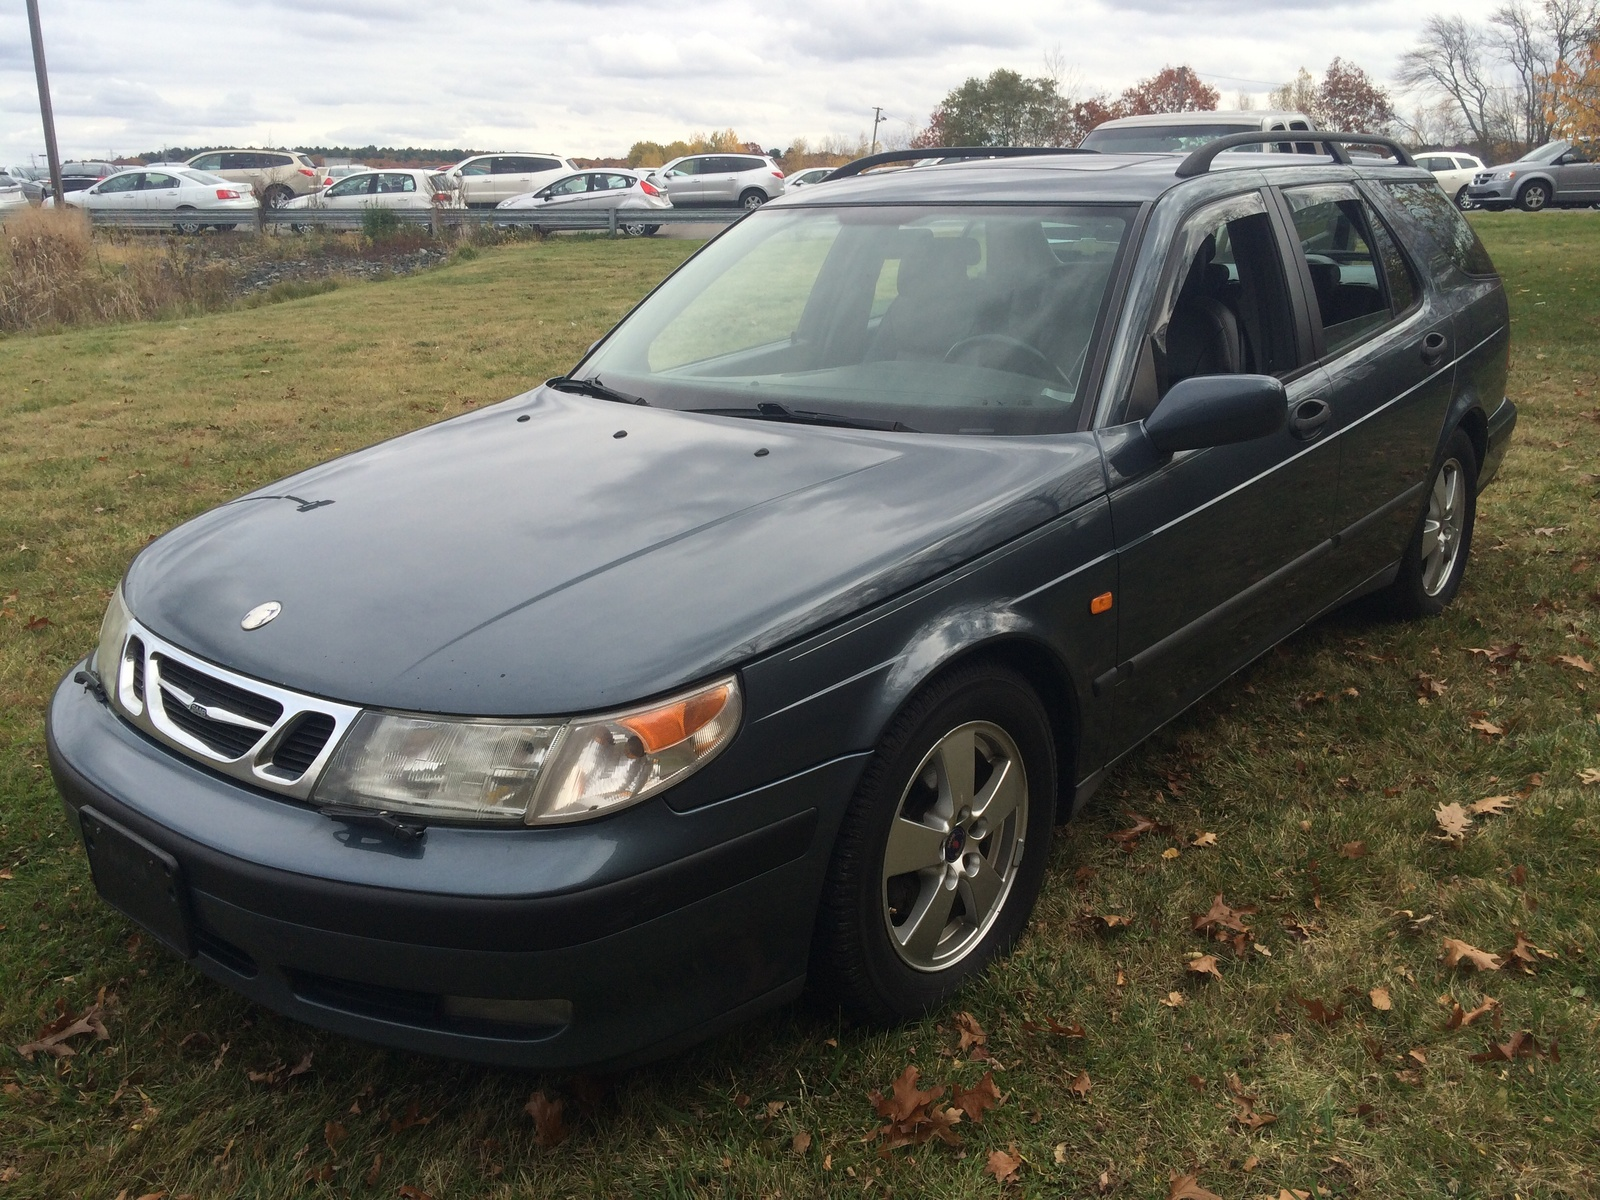 Picture of 2000 Saab 9-5 2.3T Wagon